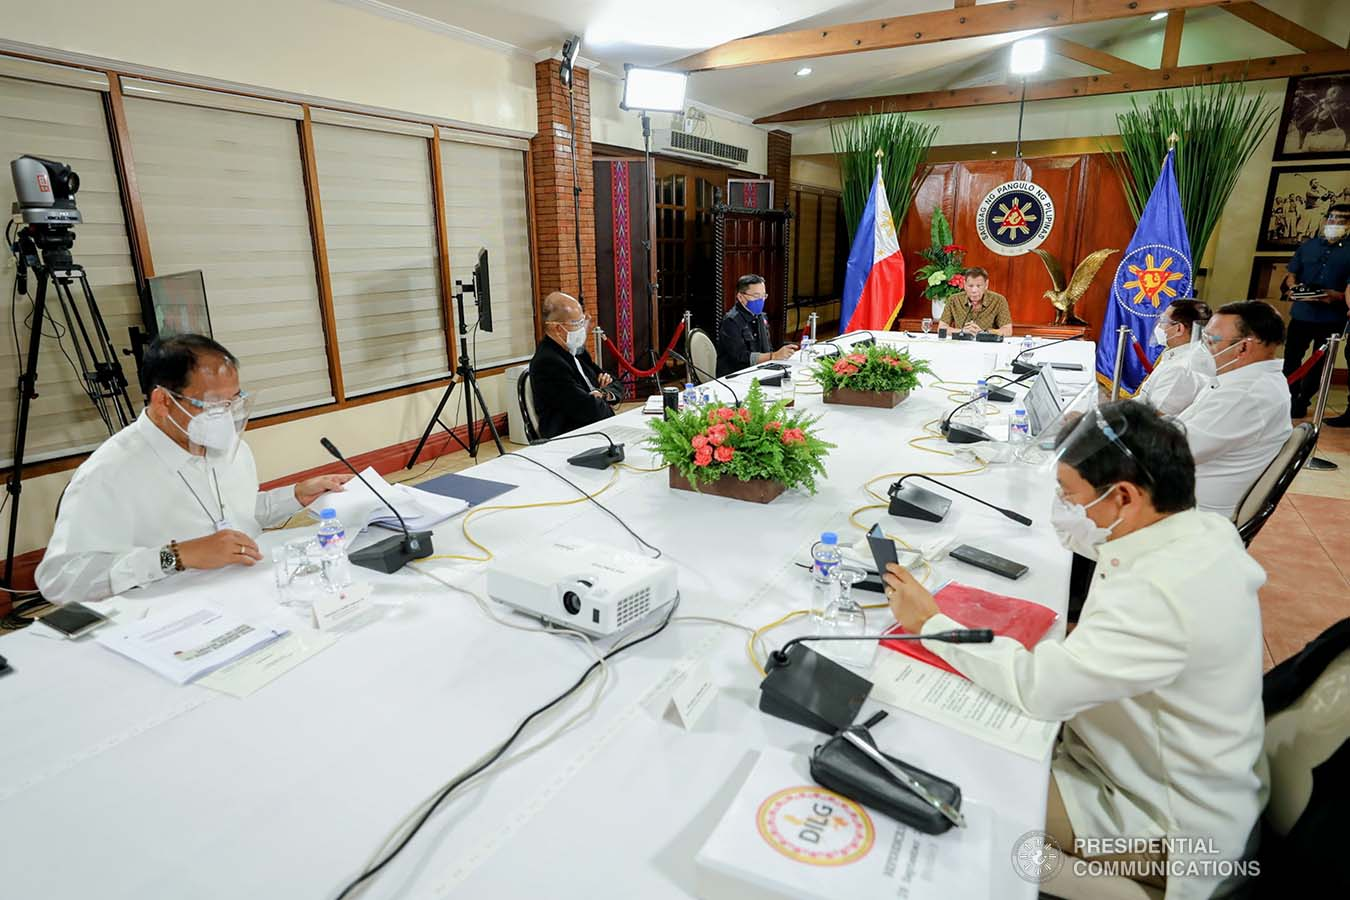 President Rodrigo Roa Duterte presides over a meeting with the Inter-Agency Task Force on the Emerging Infectious Diseases (IATF-EID) core members prior to his talk to the people at the Malago Clubhouse in Malacañang on September 28, 2020. RICHARD MADELO/ PRESIDENTIAL PHOTO